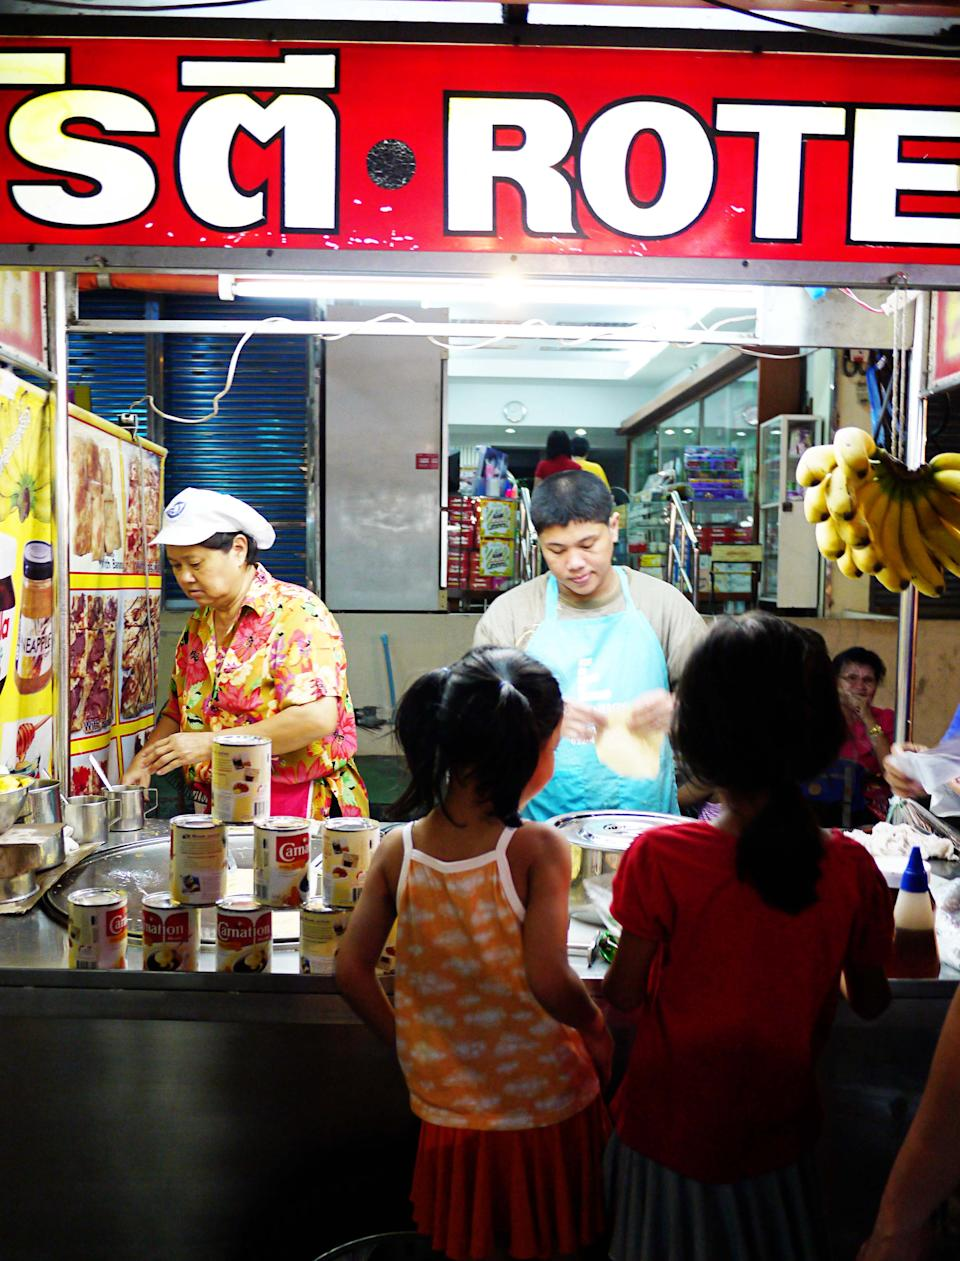 <p>The market covers about 100 metres, with stalls selling everything and anything – clothes, jewellery, souvenirs for friends back home, food, household décor items, there's much to see and buy! And if you're still craving seafood, you can drop by the many seafood stalls here to have your crustacean fill. One thing to watch out – because it is a touristy area, prices can be on the higher side though it is still pretty much very affordable!</p>